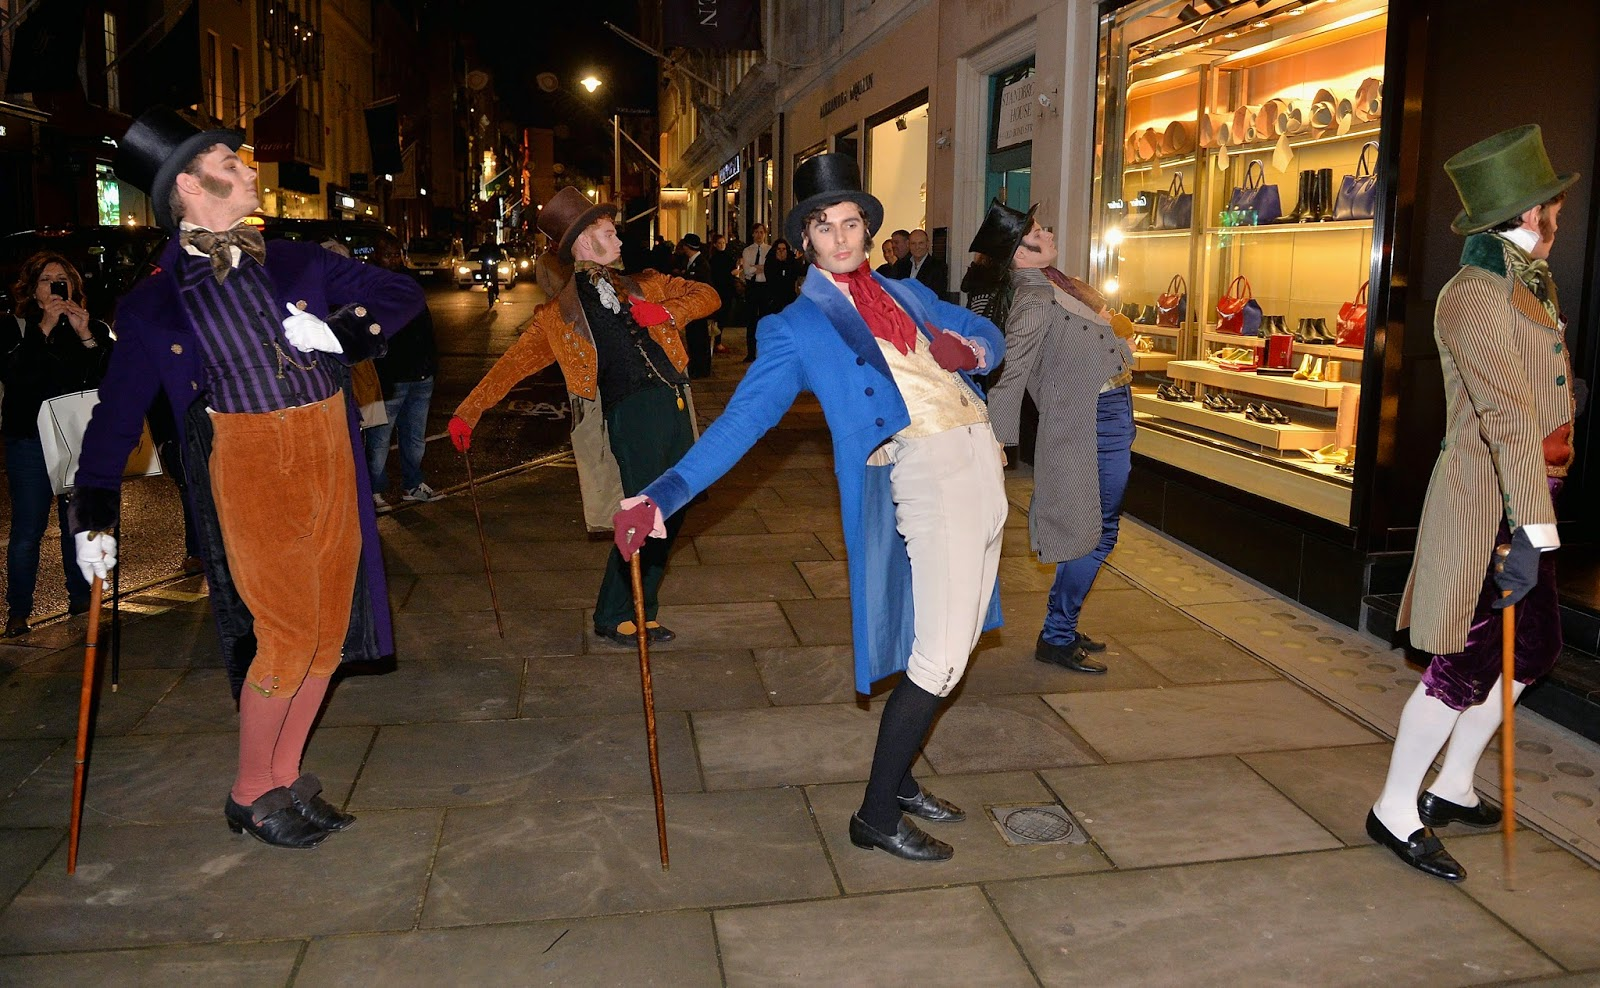 Six Dapper men performing at the 2014 Bond Street Christmas Illuminations